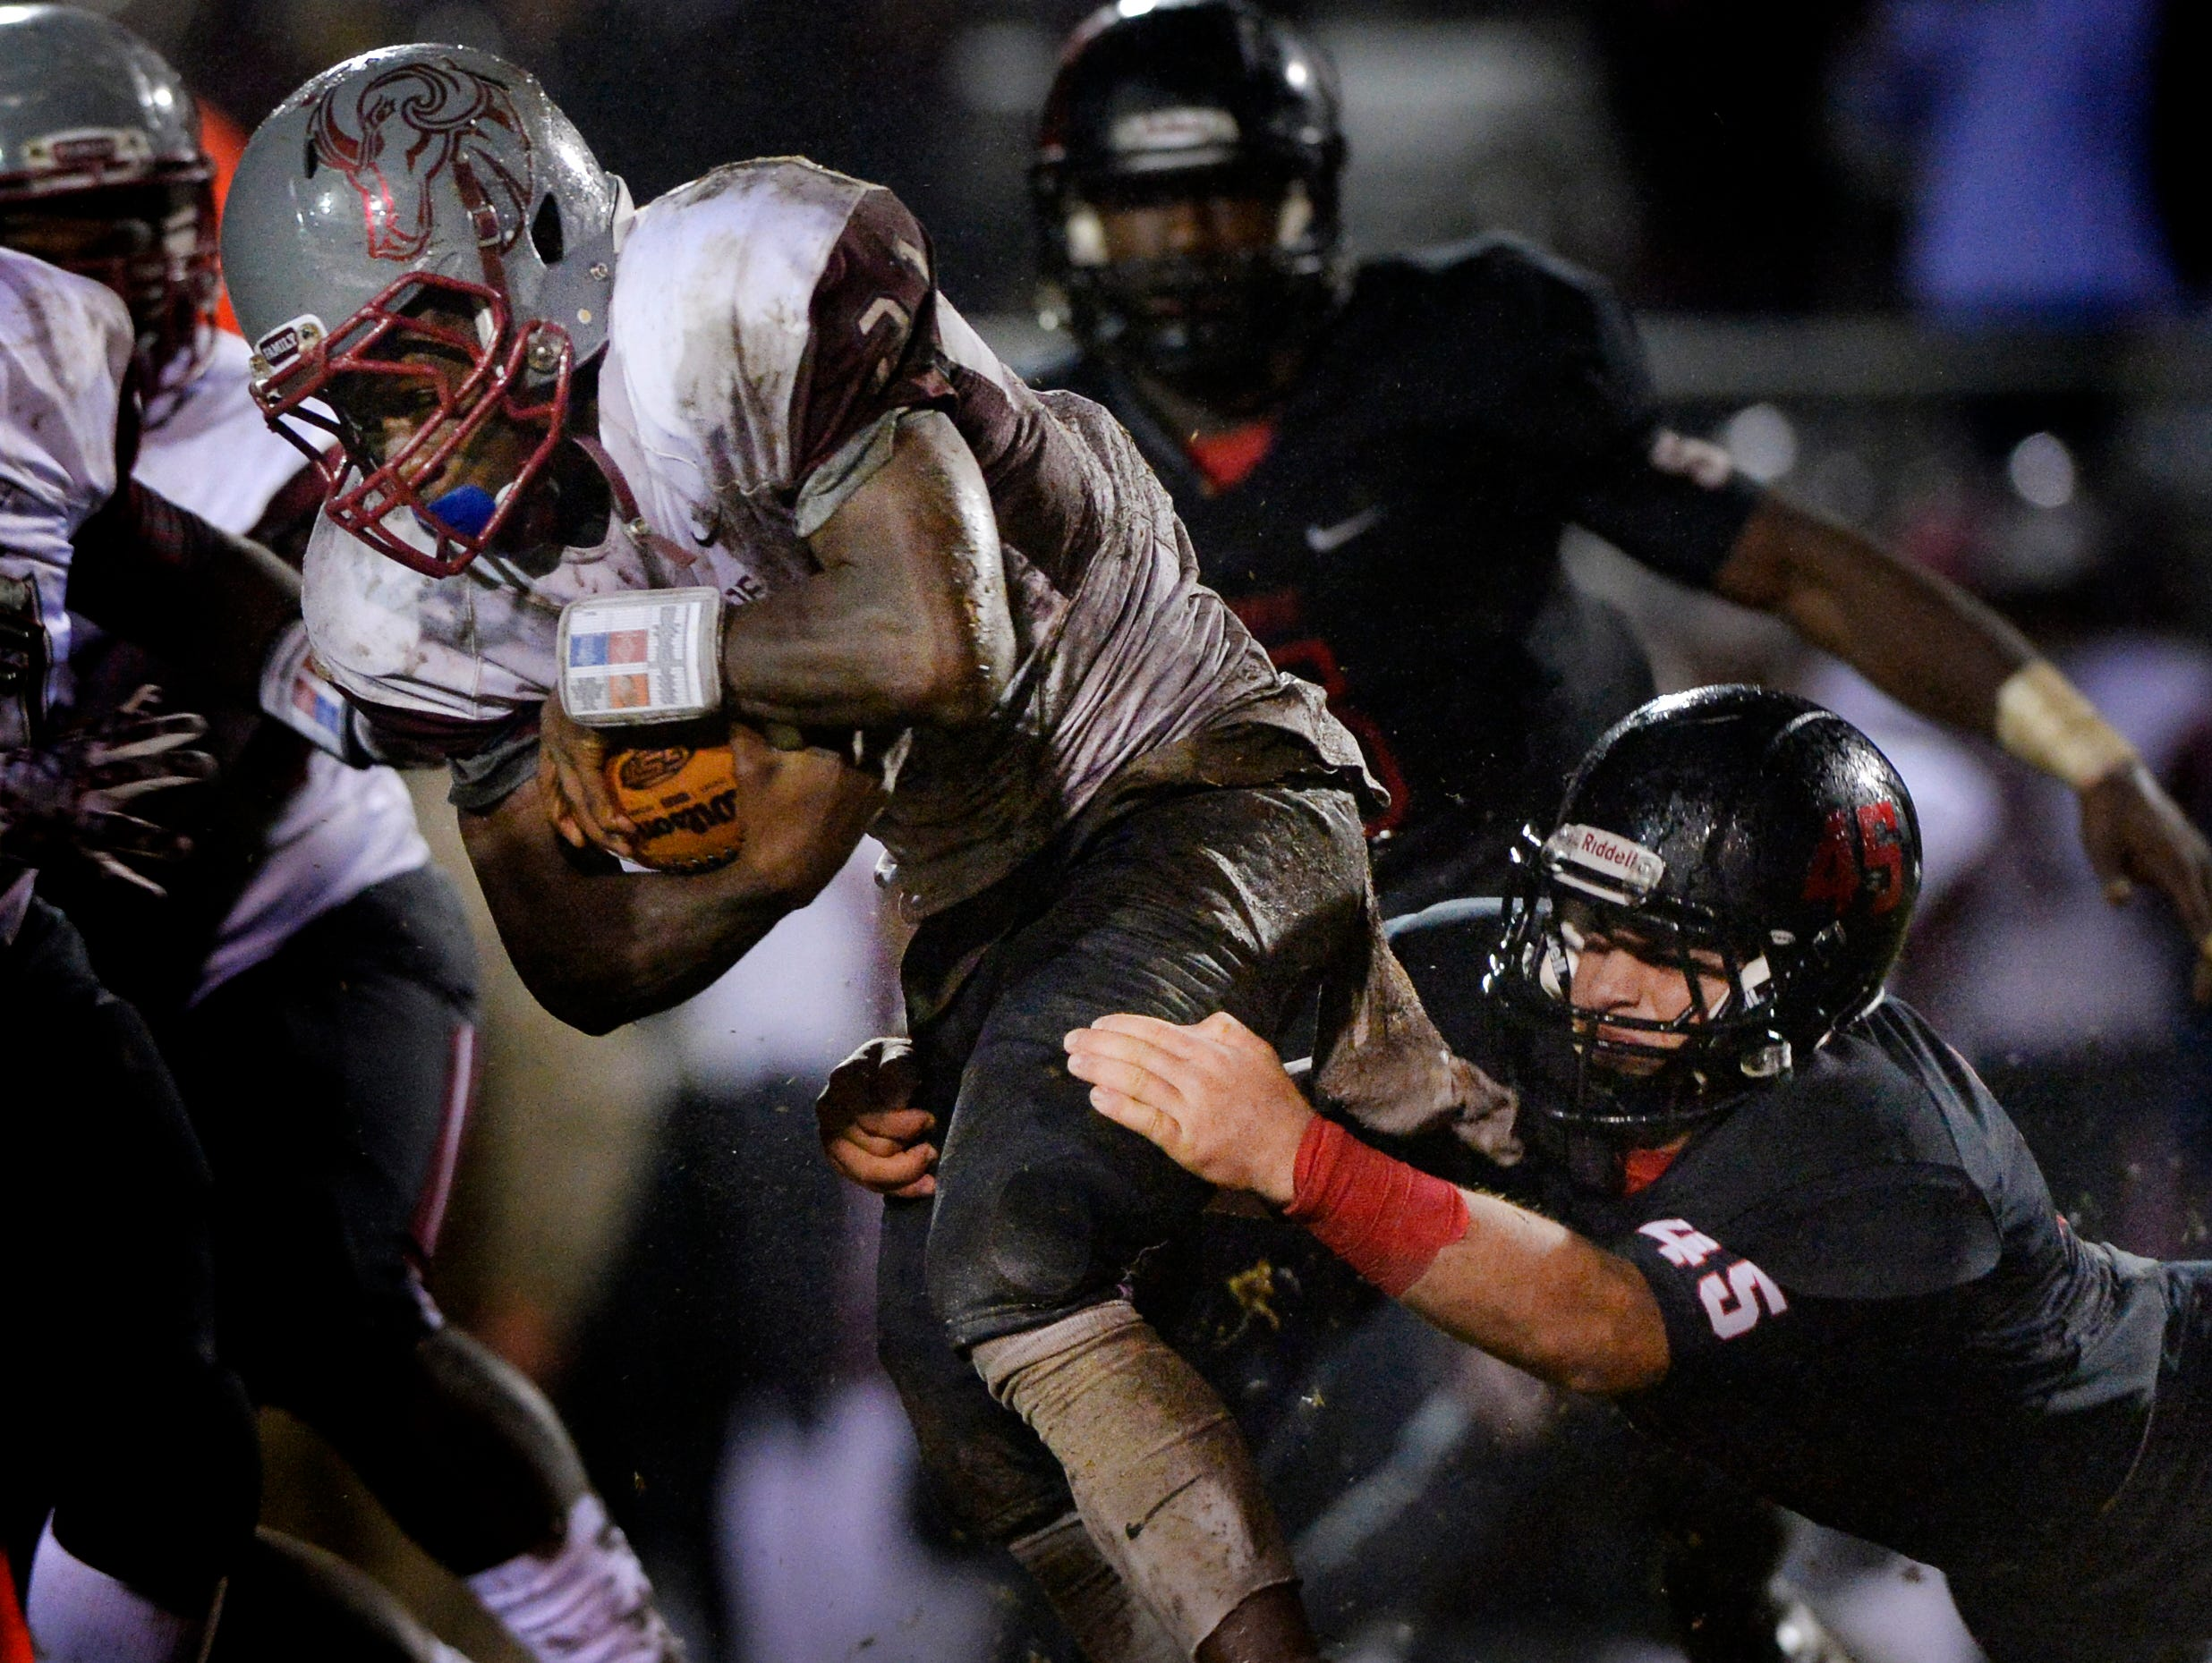 Hillcrest's Keith Humphrey (25) tackles WestsideÕs Quinn Wright (21) late in the second quarter in a Region 1-AAAA game at Hillcrest High School on Friday, October 2, 2015.